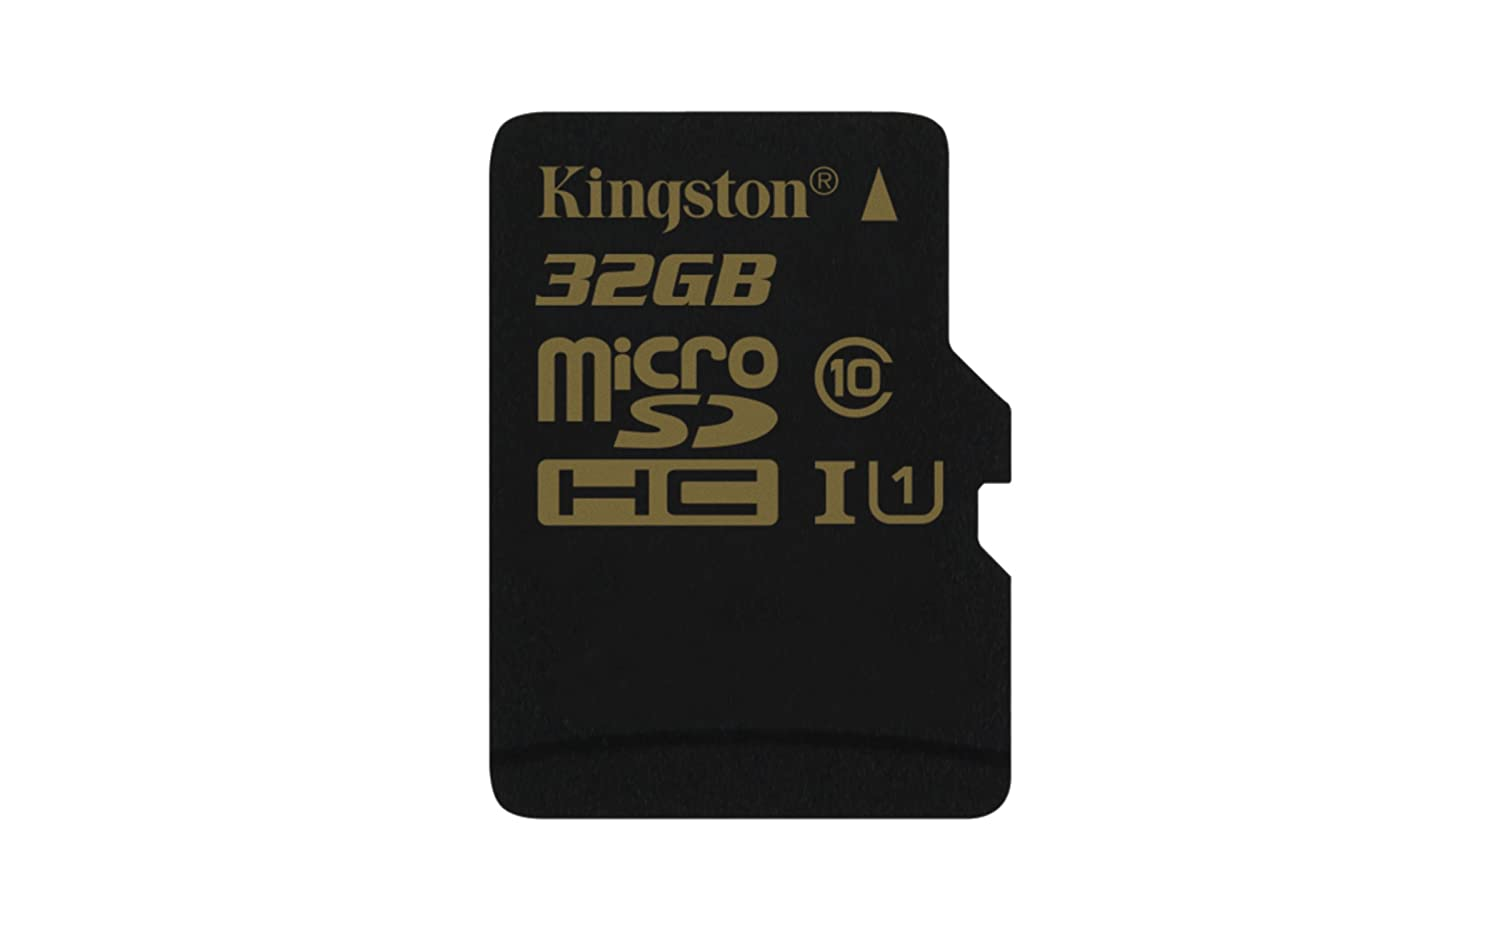 Kingston SDCA10/32GB - Tarjeta microSD de 32 GB SP (clase 10, SDHC/SDXC), negro